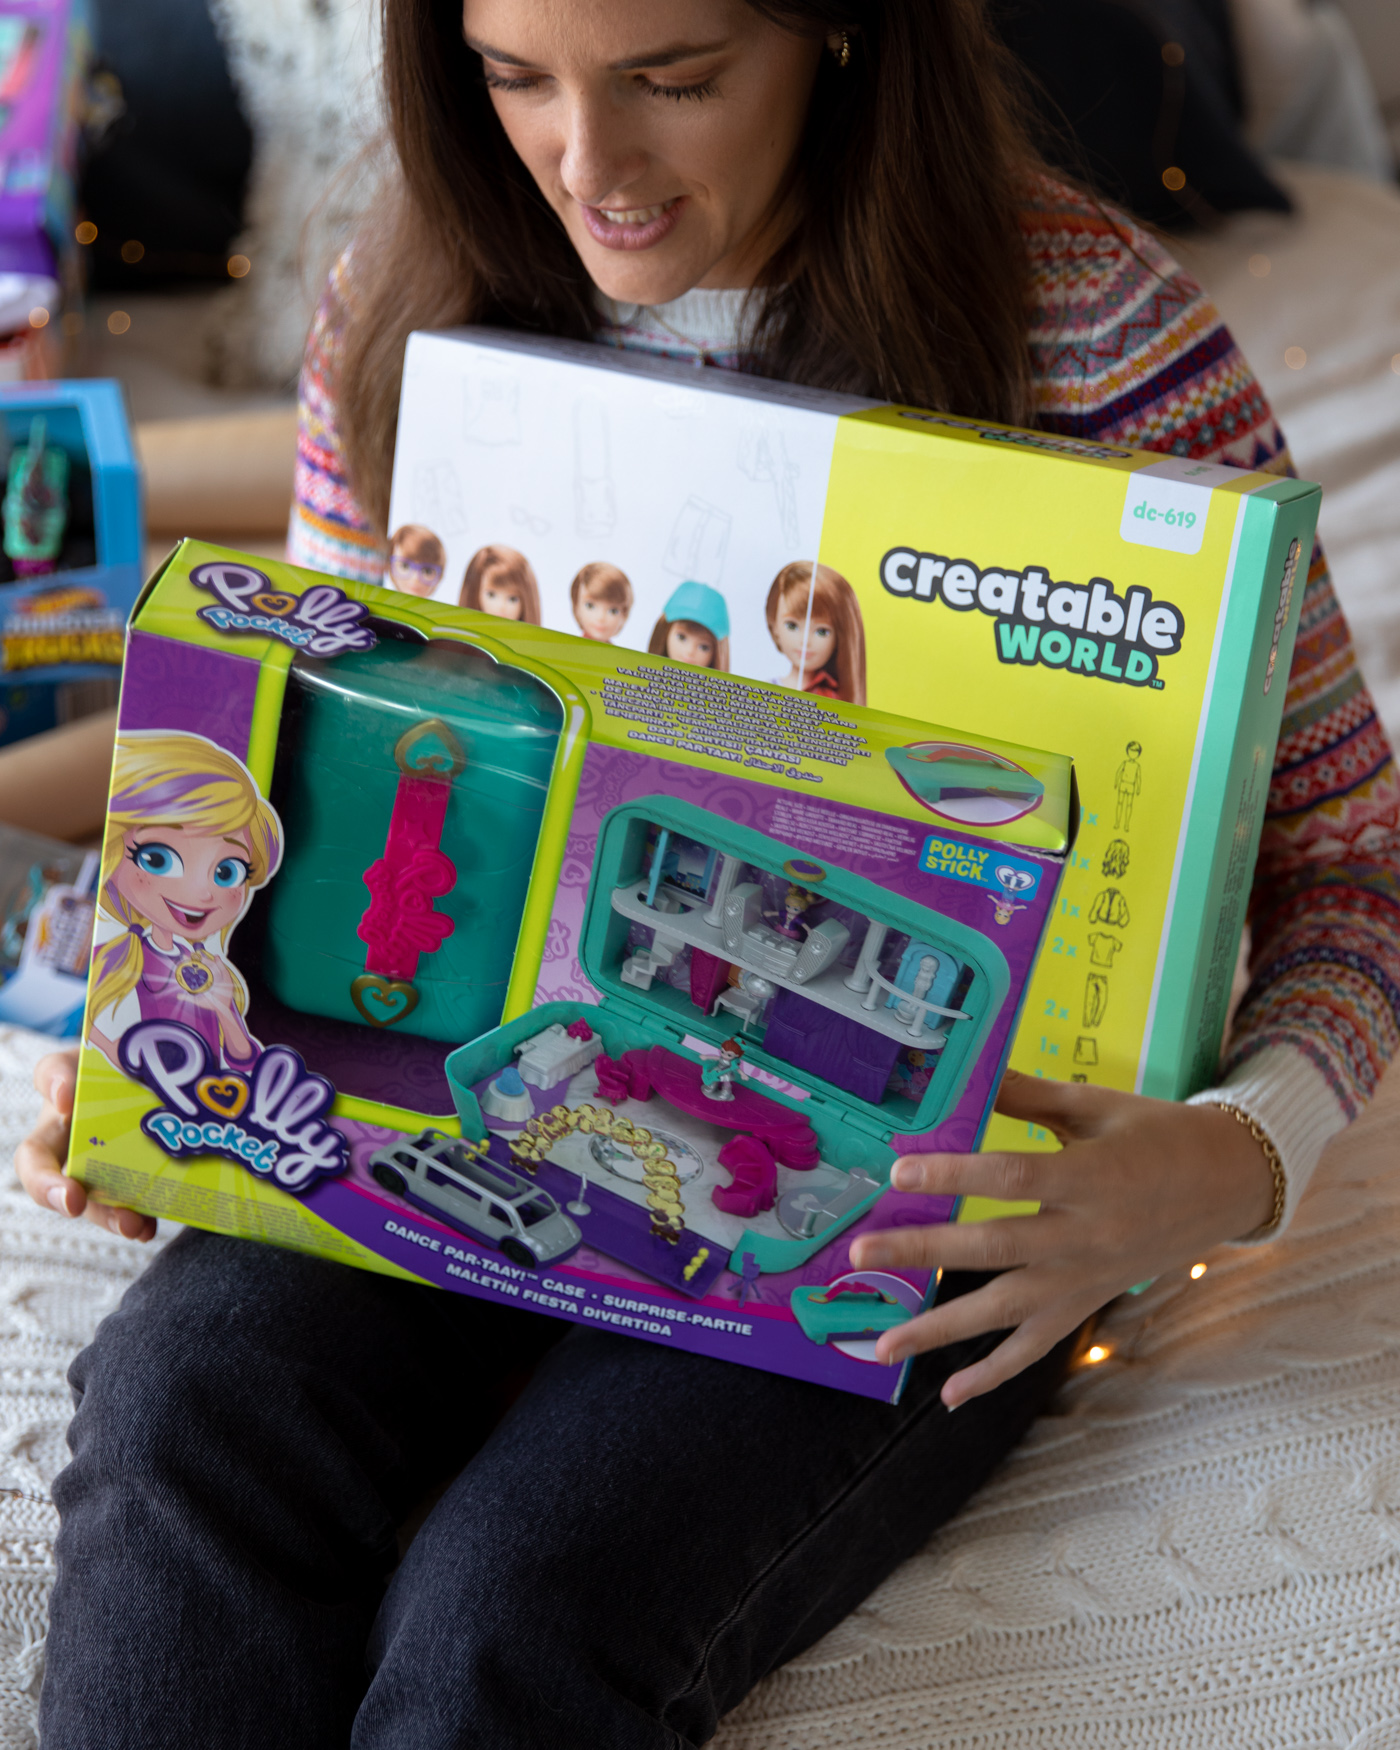 Polly Pocket and Creatable World gifts for Christmas in 2019